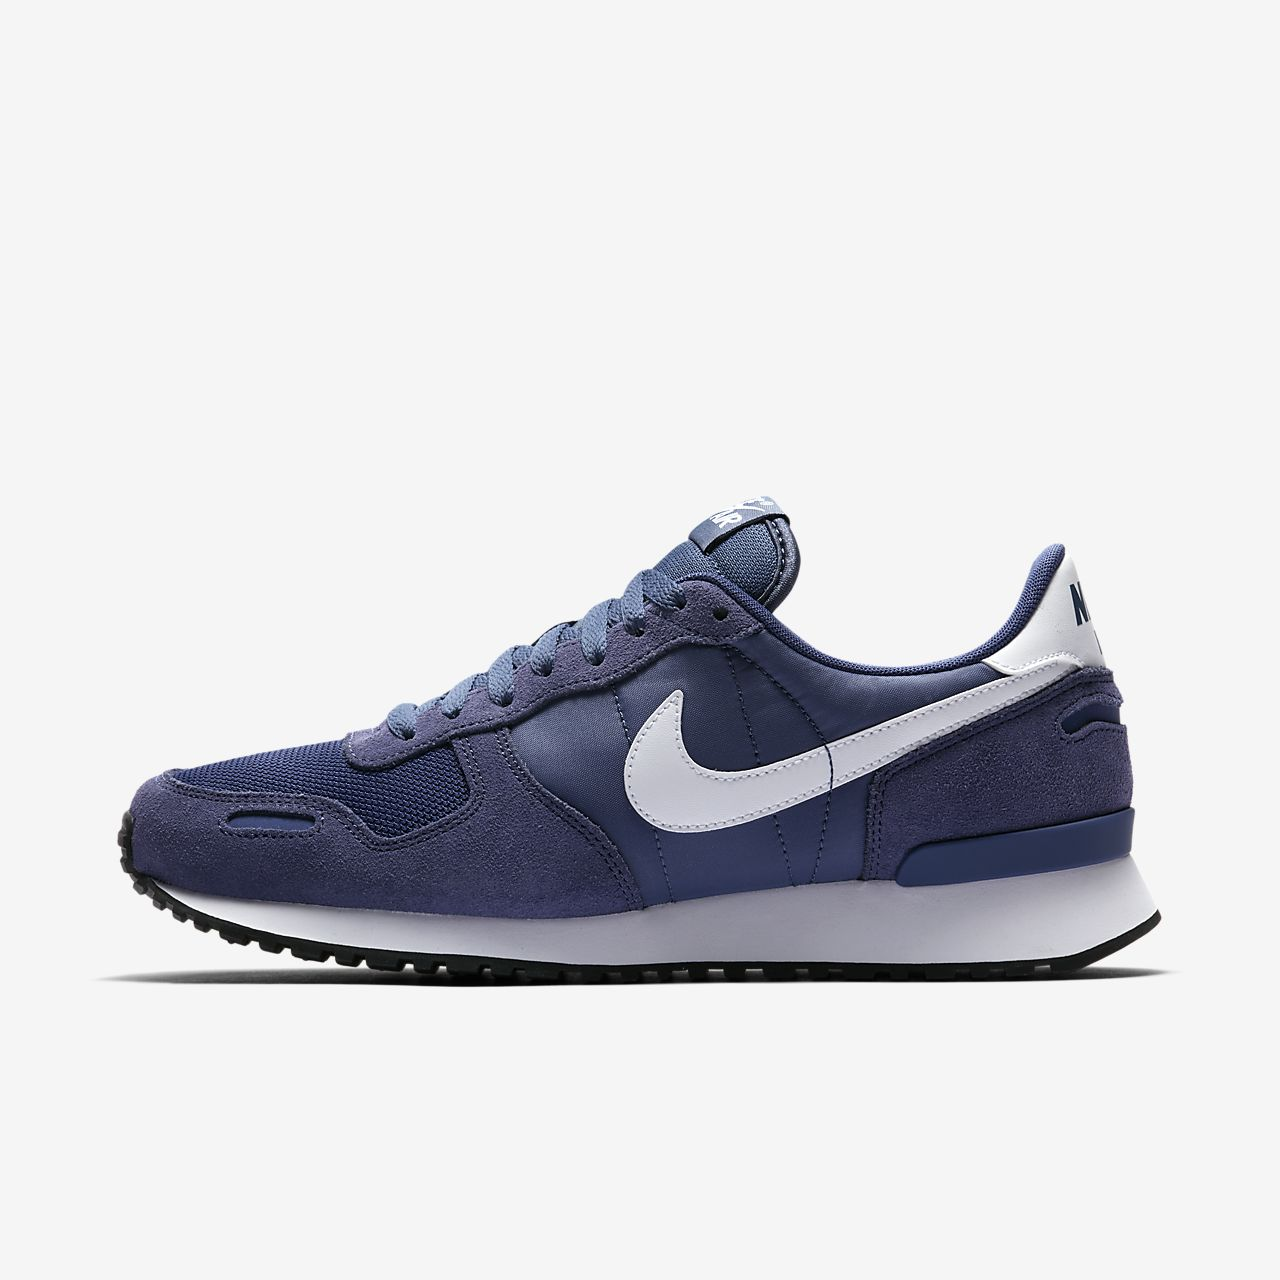 plus récent 10b24 018ae Nike Air Vortex Men's Shoe